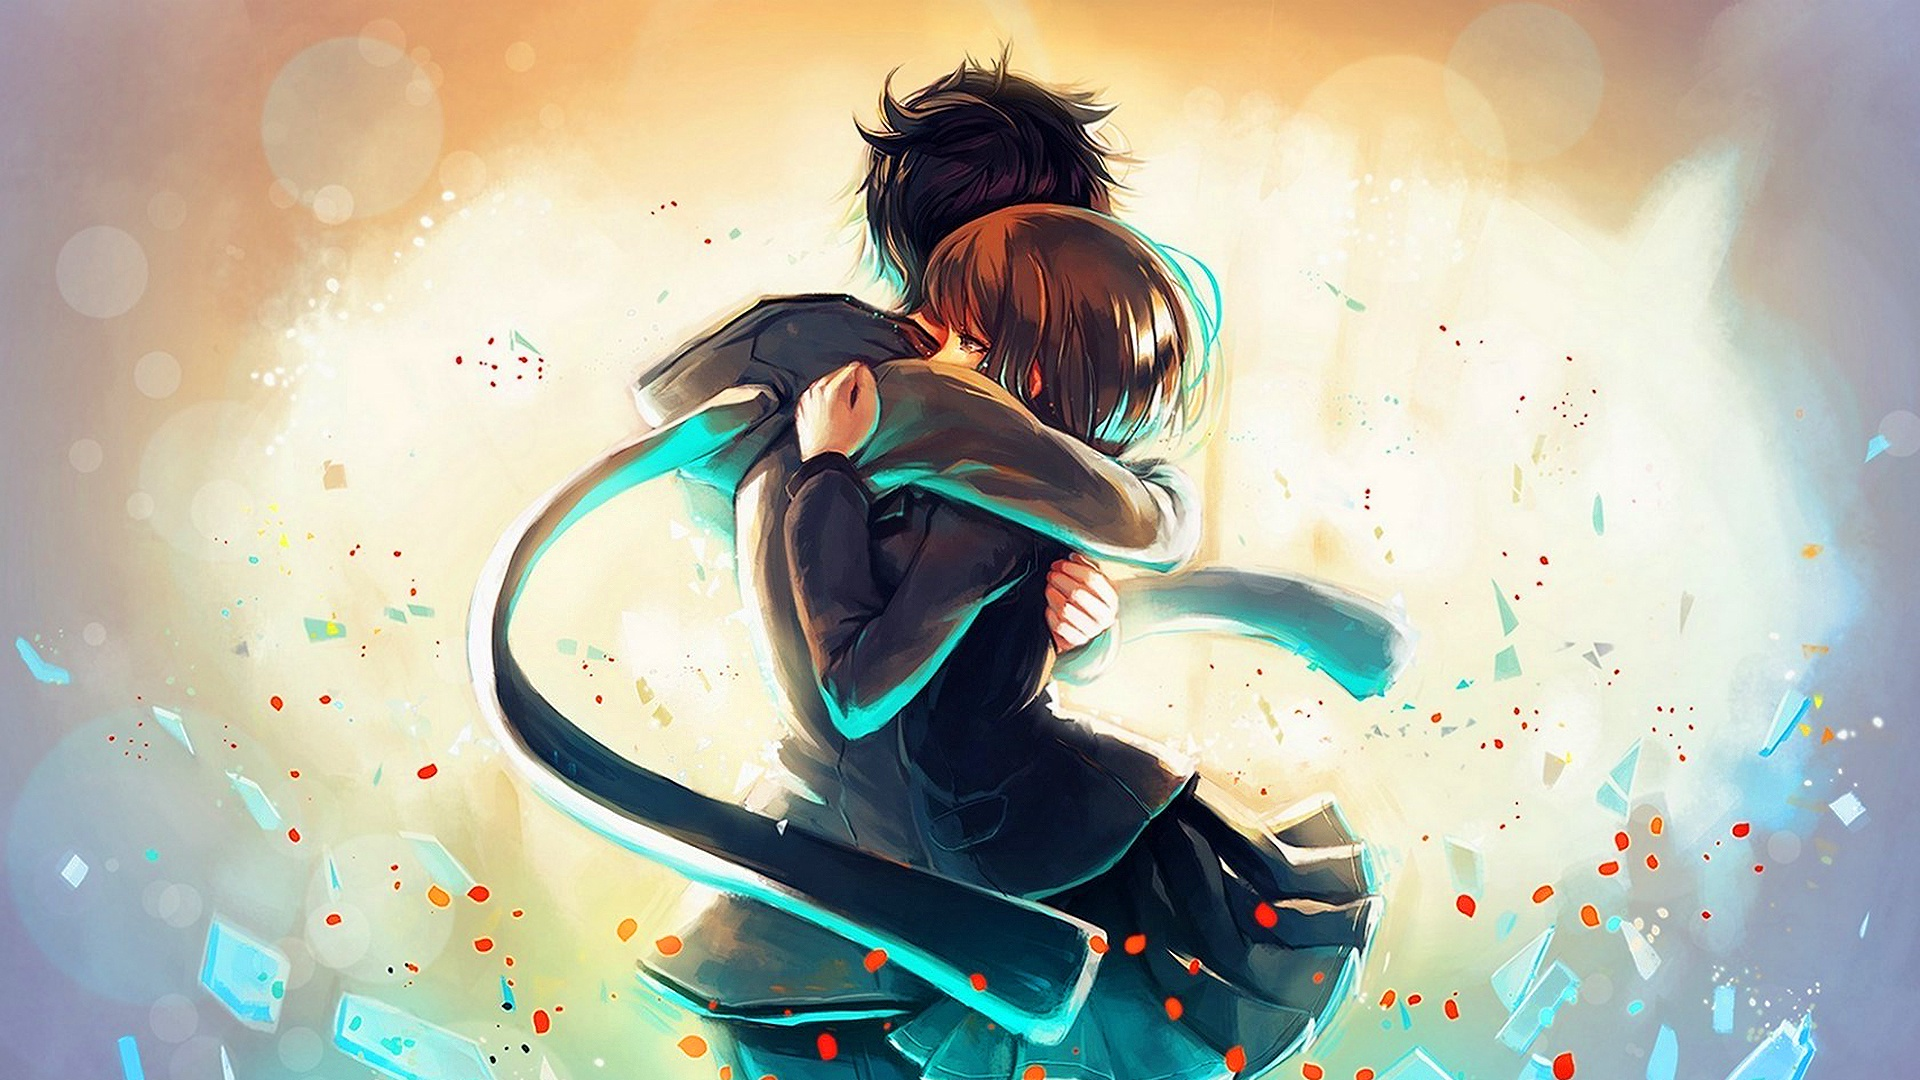 Boy And Girl Love Wallpaper Free : Best Hug Day Wallpaper - Gallery